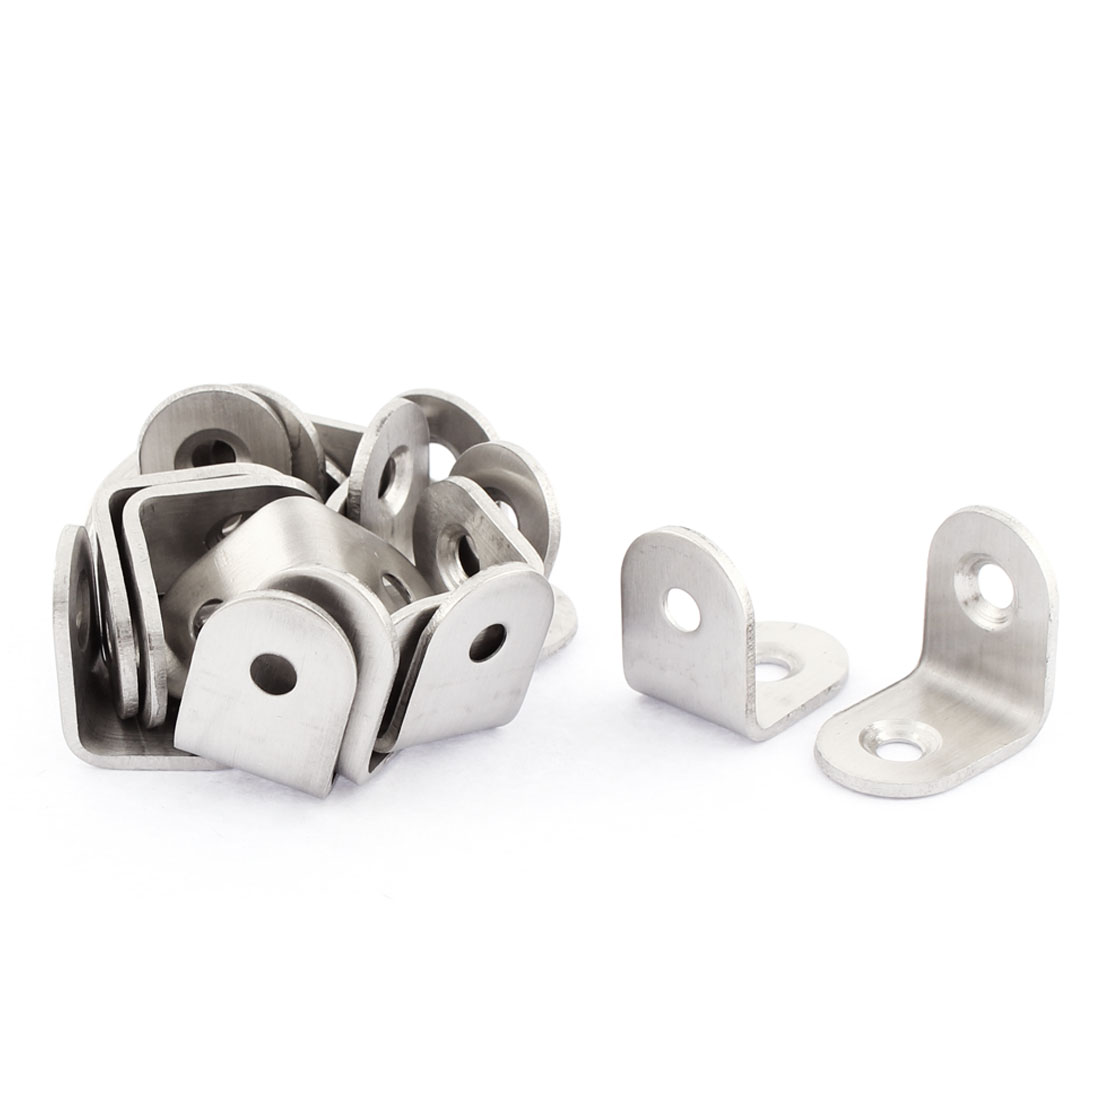 Stainless Steel Corner Brace Joint Right Angle Bracket Fastener 20 x 20mm 20pcs